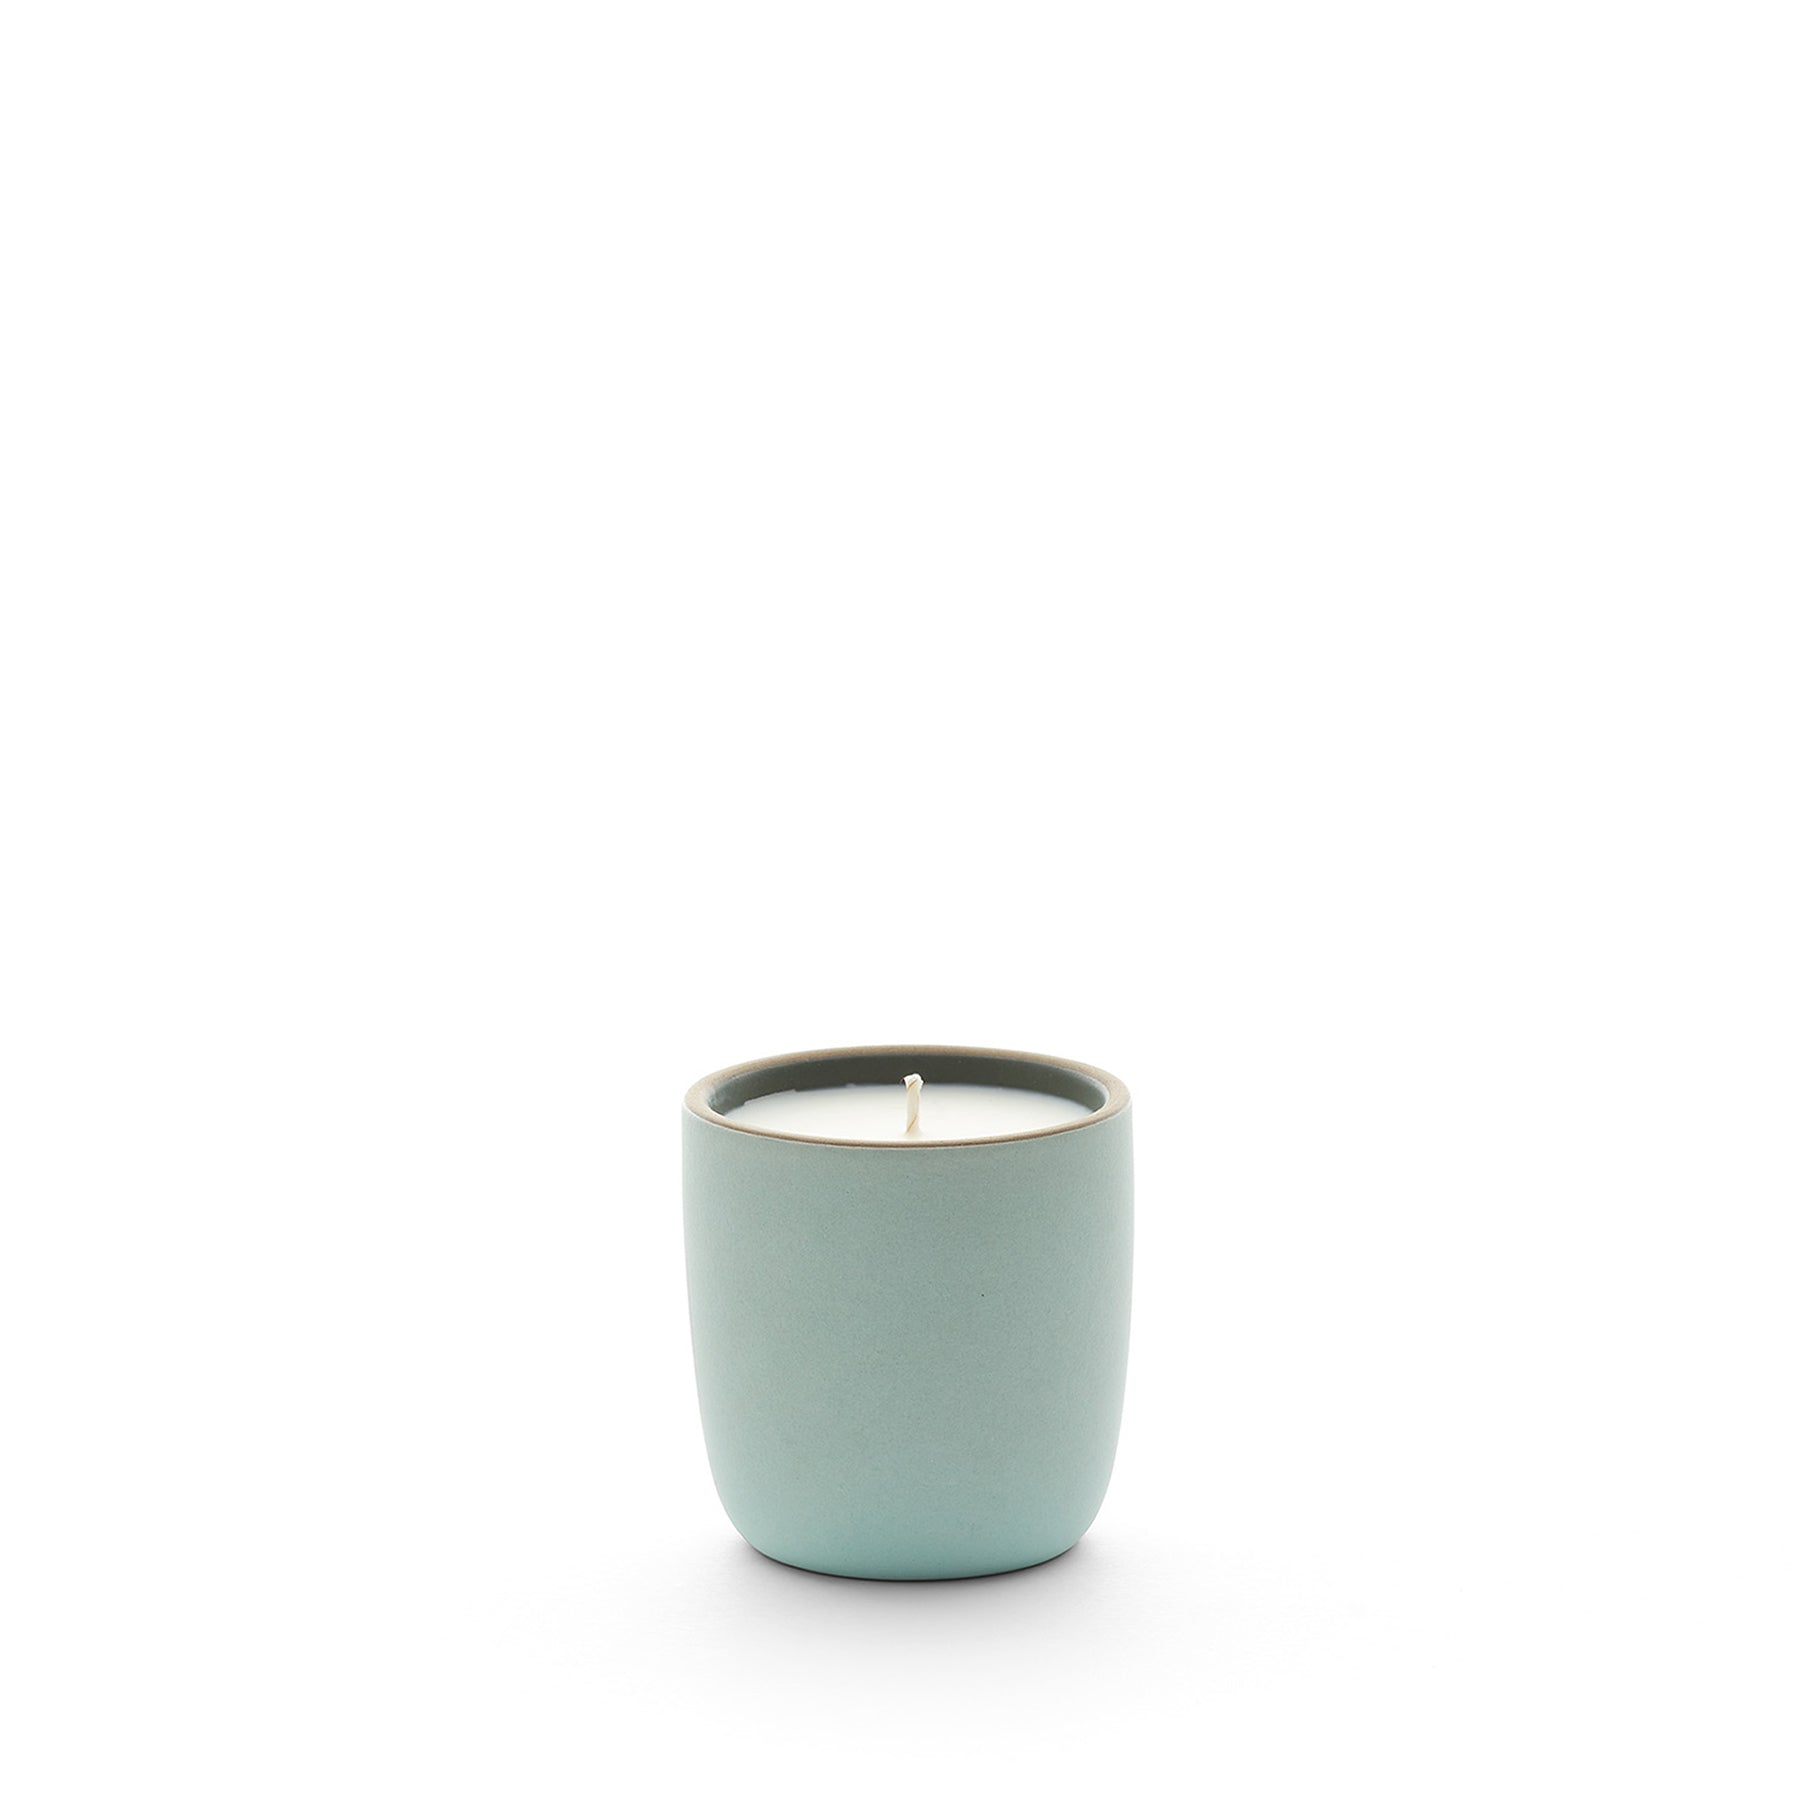 Violet Leaf and Fir Candle in Penny Green Cup Zoom Image 1